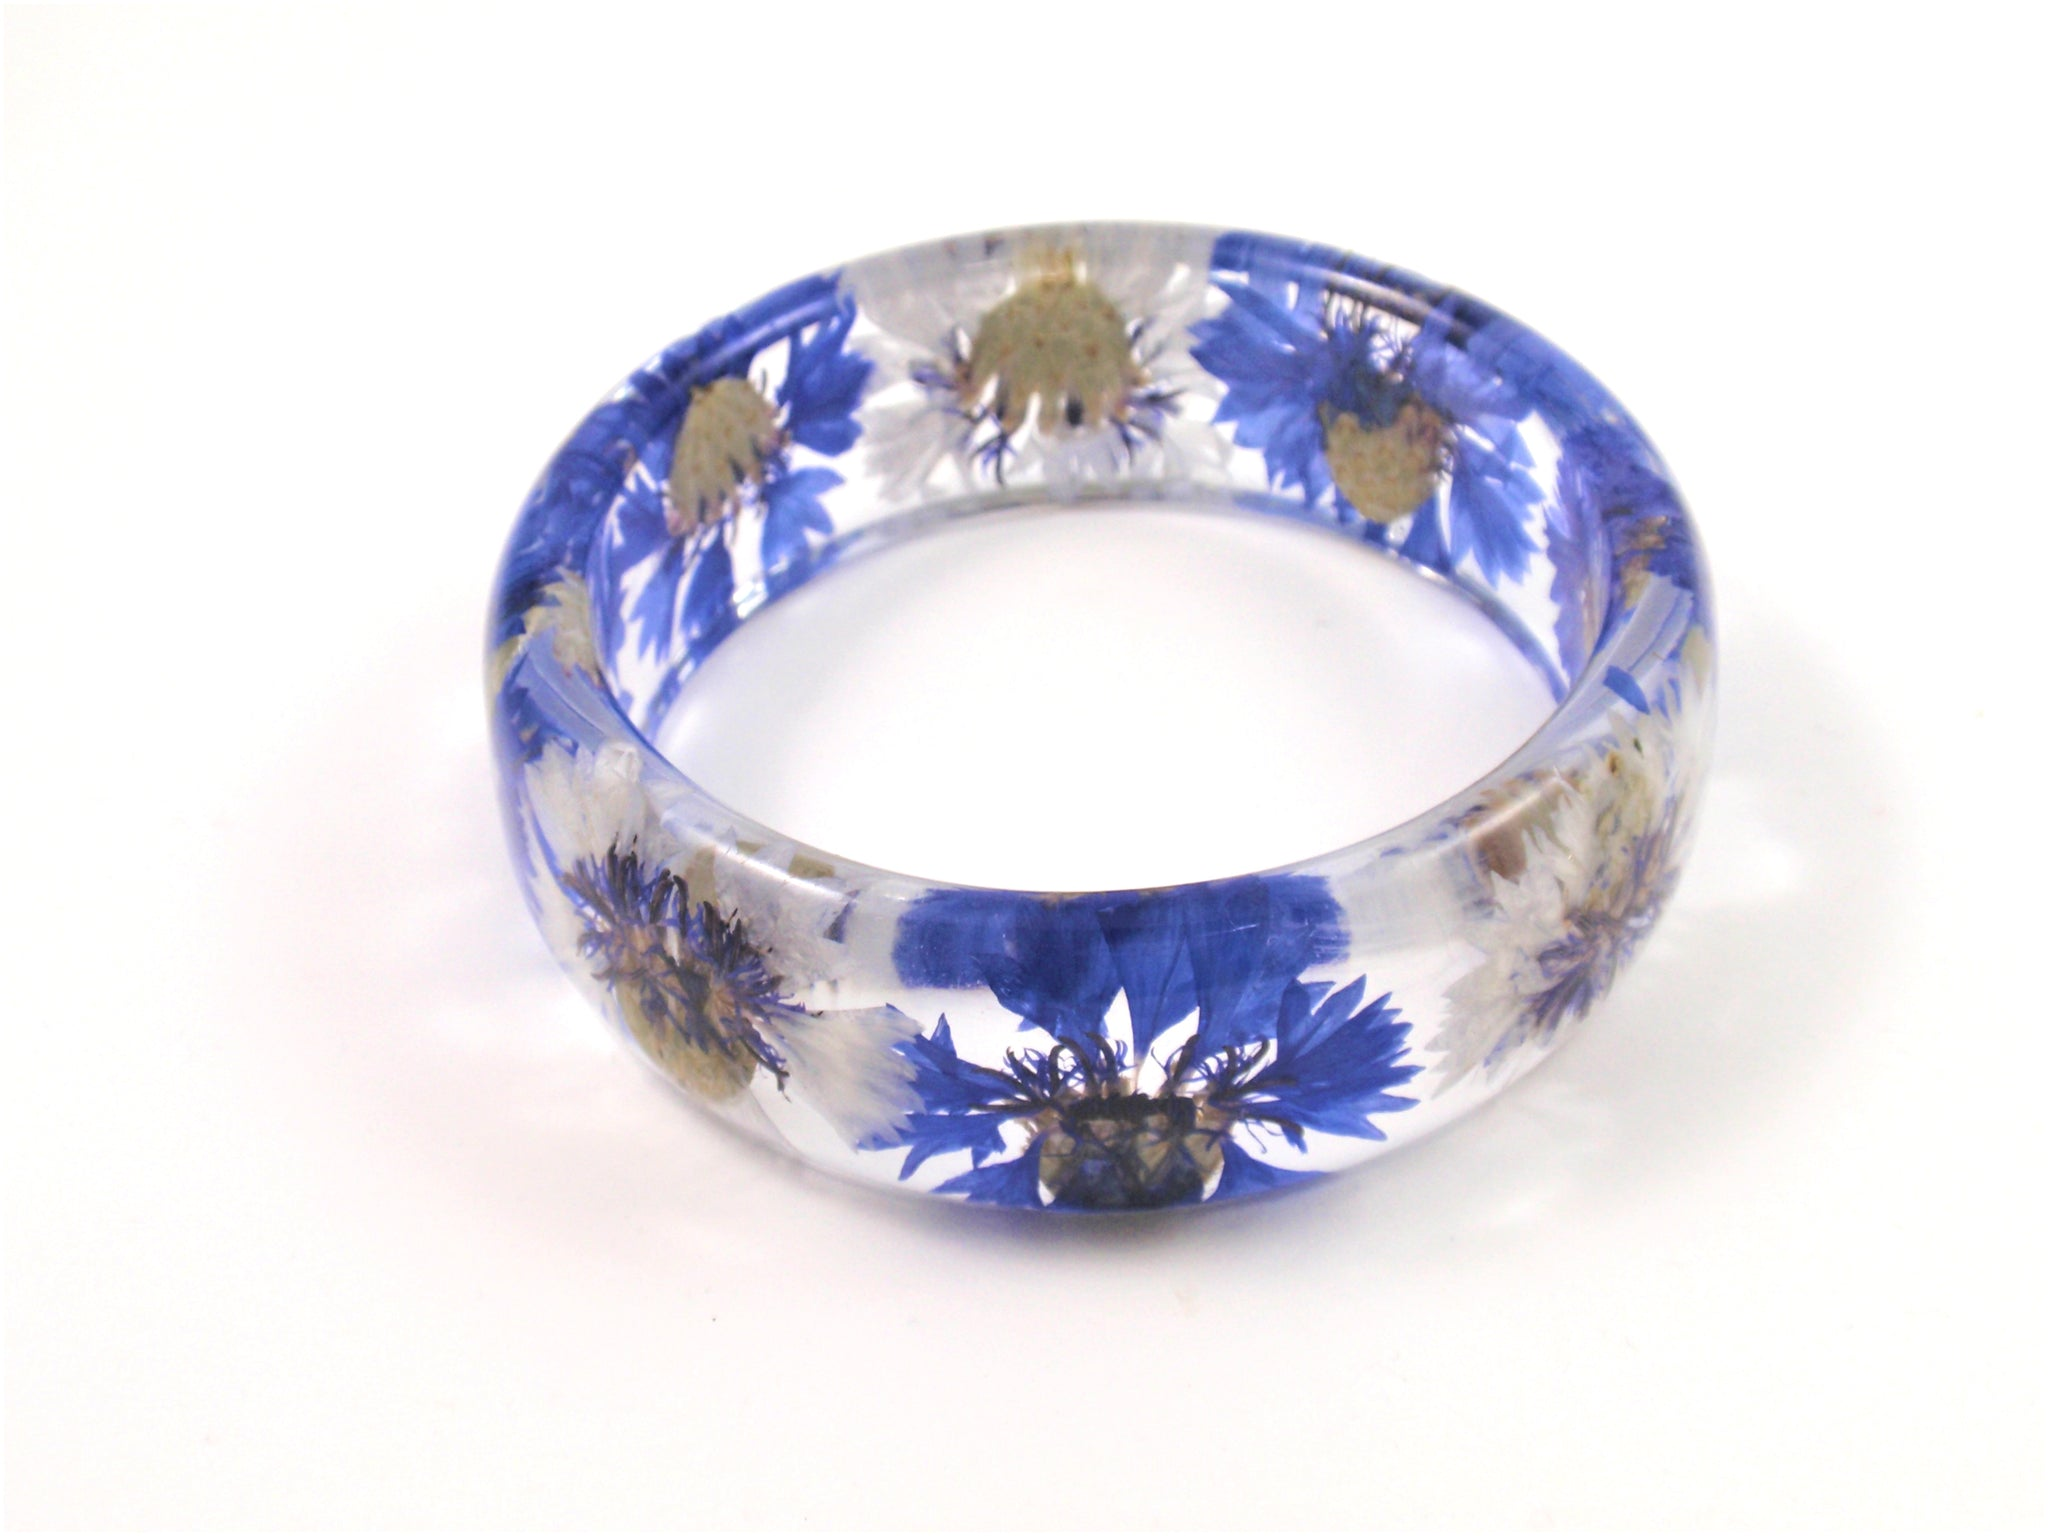 Blue Cornflower Resin Bangle Bracelet, Real Pressed Flowers